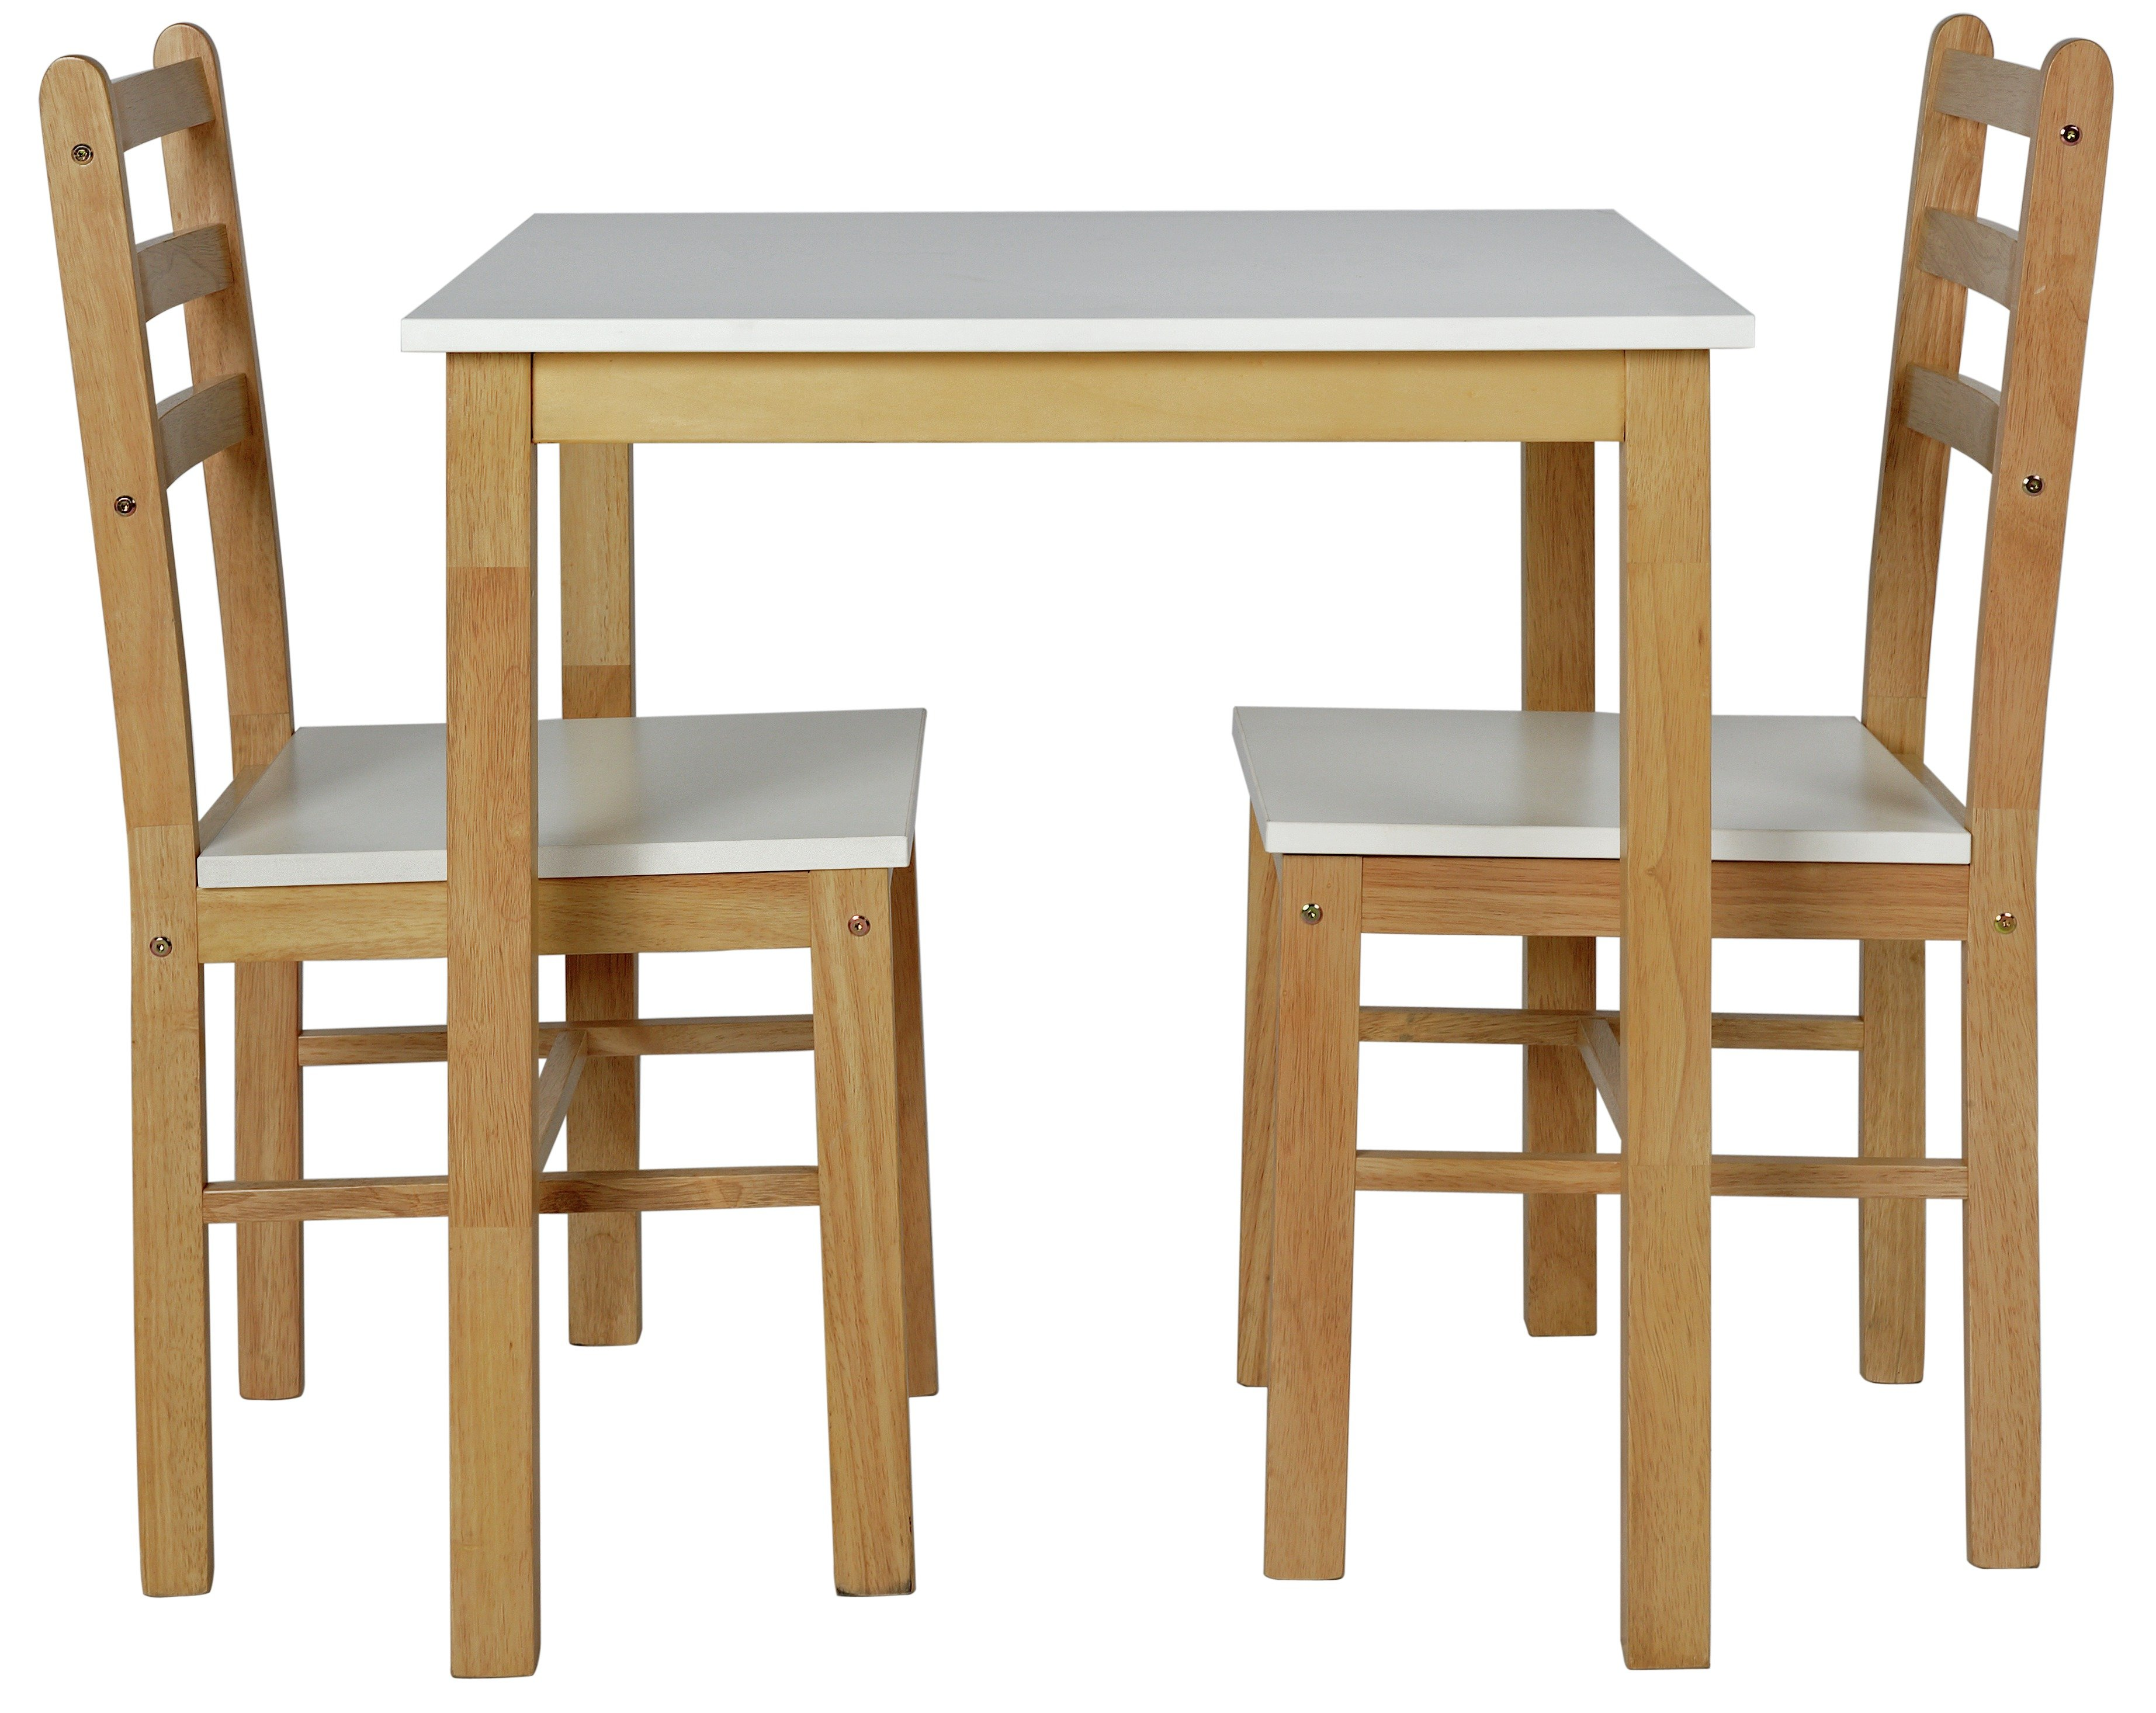 Home and garden dining room furniture bistro sets compare online 247 - Bistro sets for small spaces collection ...